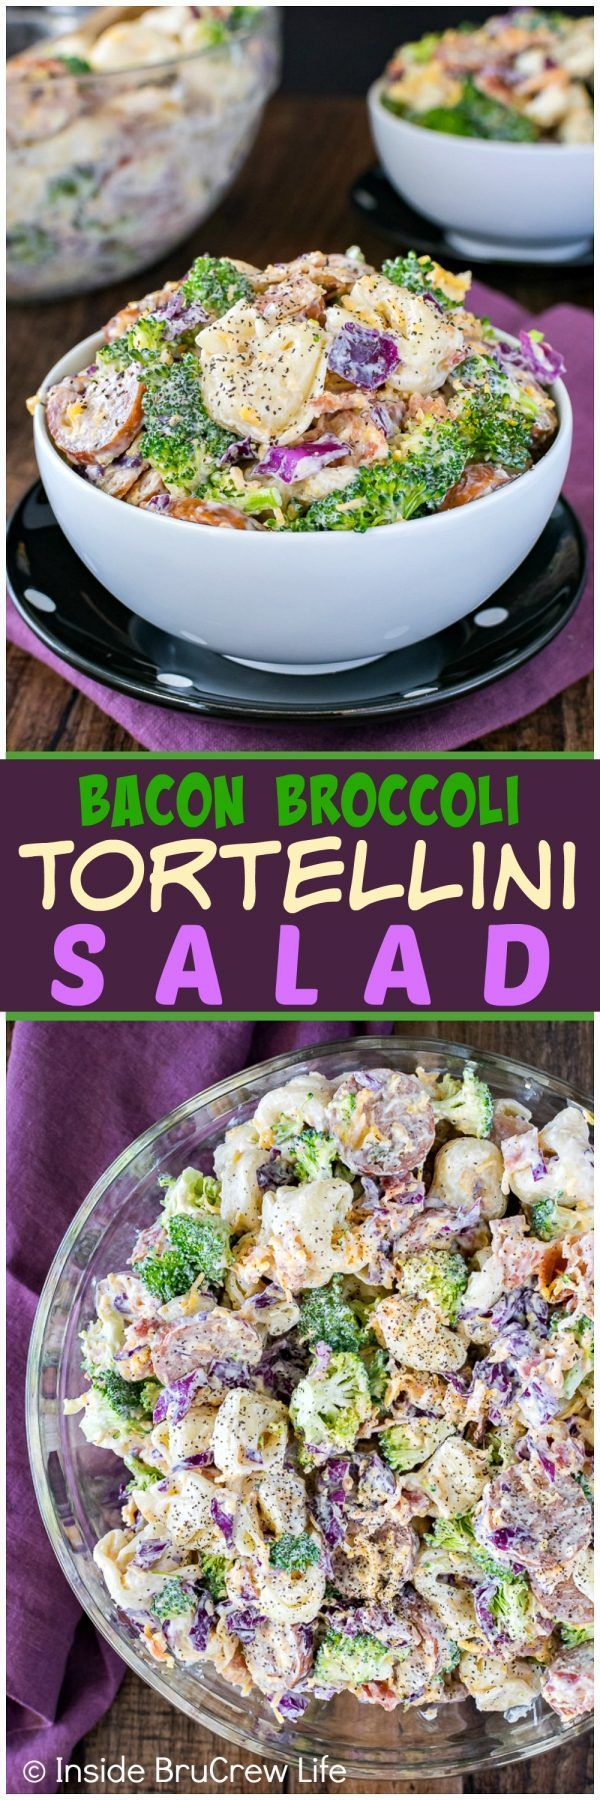 Bacon Broccoli Tortellini Salad - cheese filled pasta, veggies, and meats make this pasta salad recipe a great dish for summer dinners or picnics!